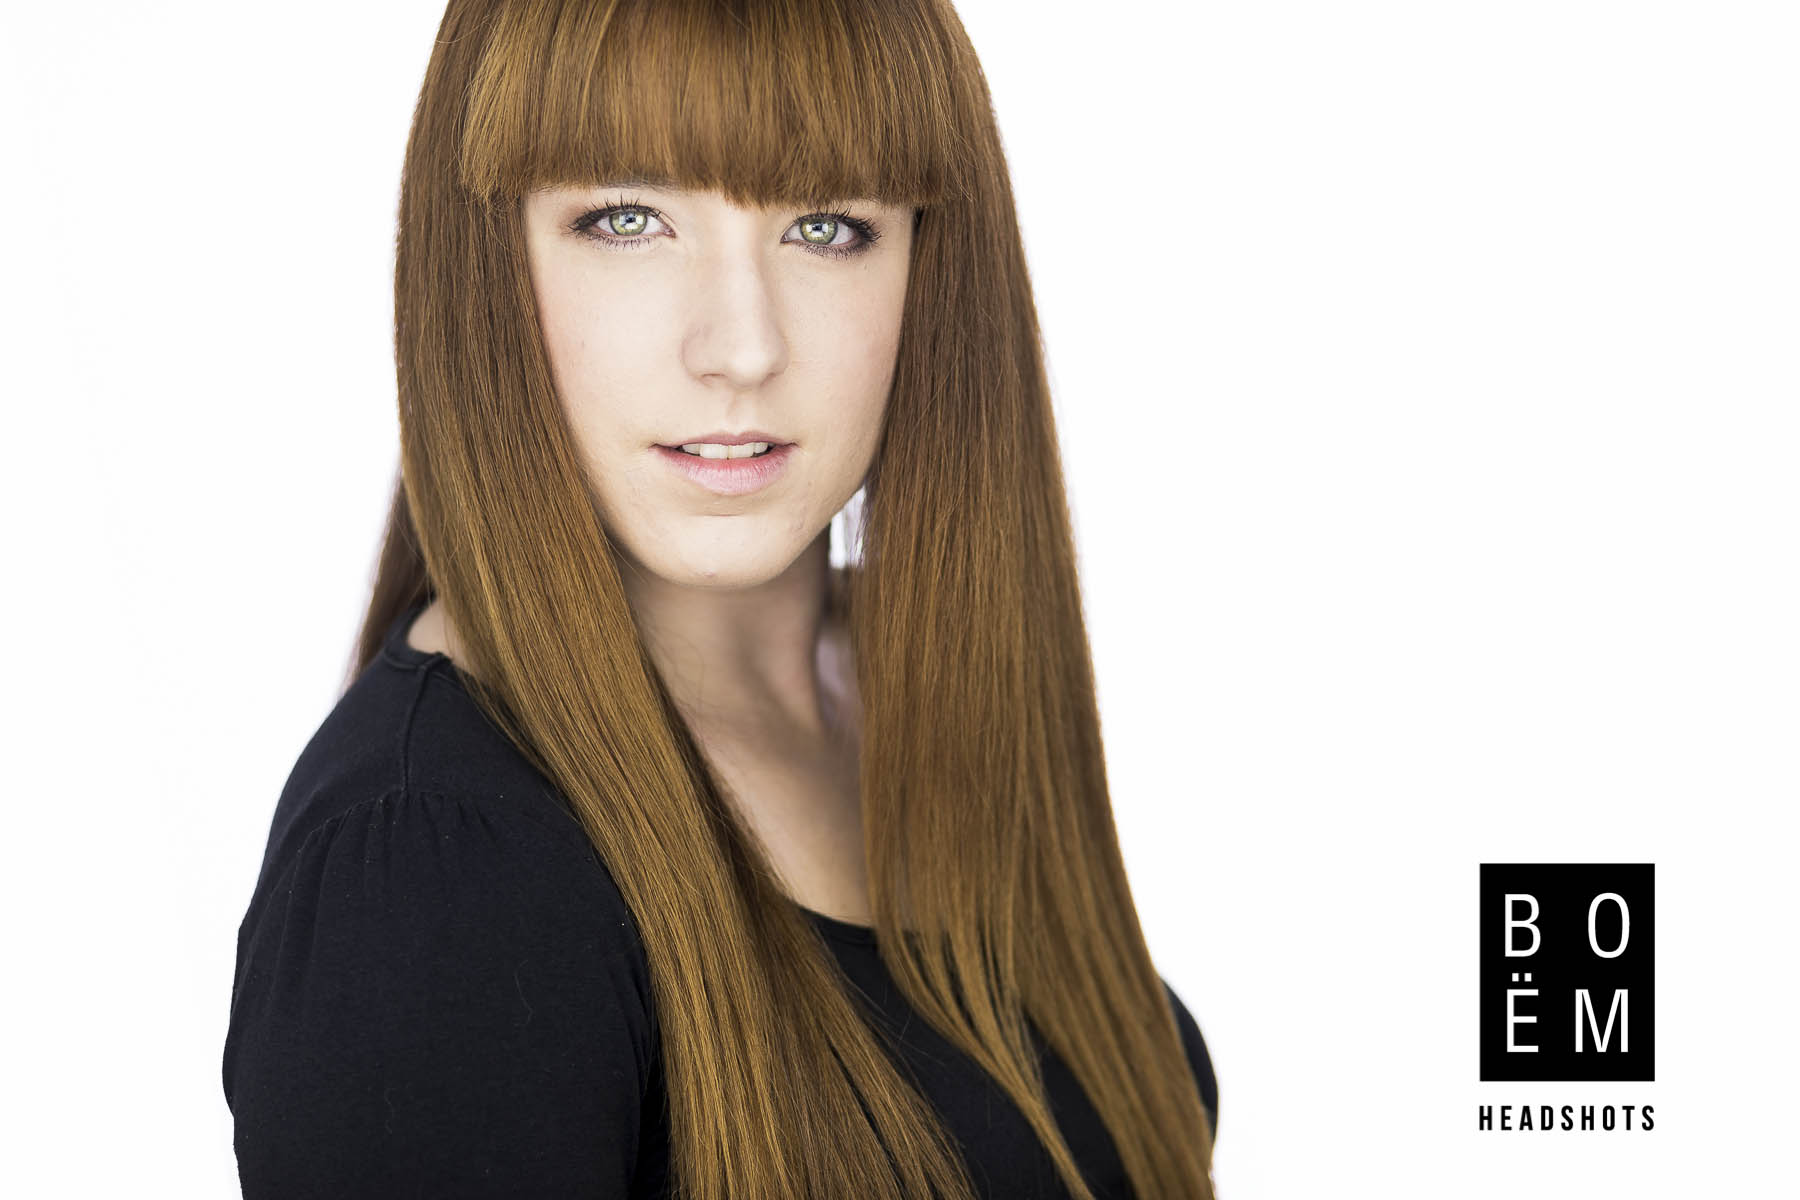 A look at Lucy's stunning new headshots by Boem Headshots in Adelaide, the premier headshot and portrait photographer.